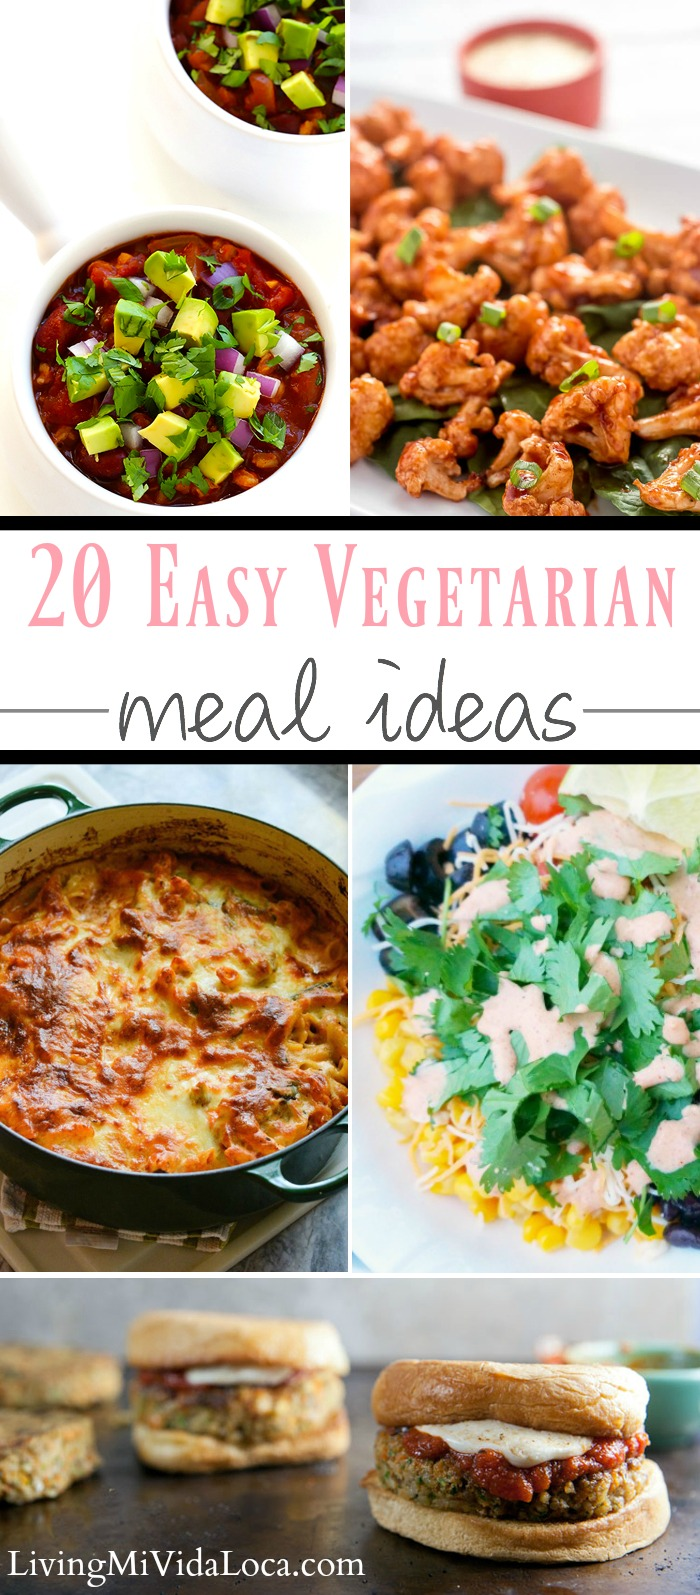 Easy vegetarian meal ideas, healthy dinners, make at home meals - LivingMiVidaLoca.com